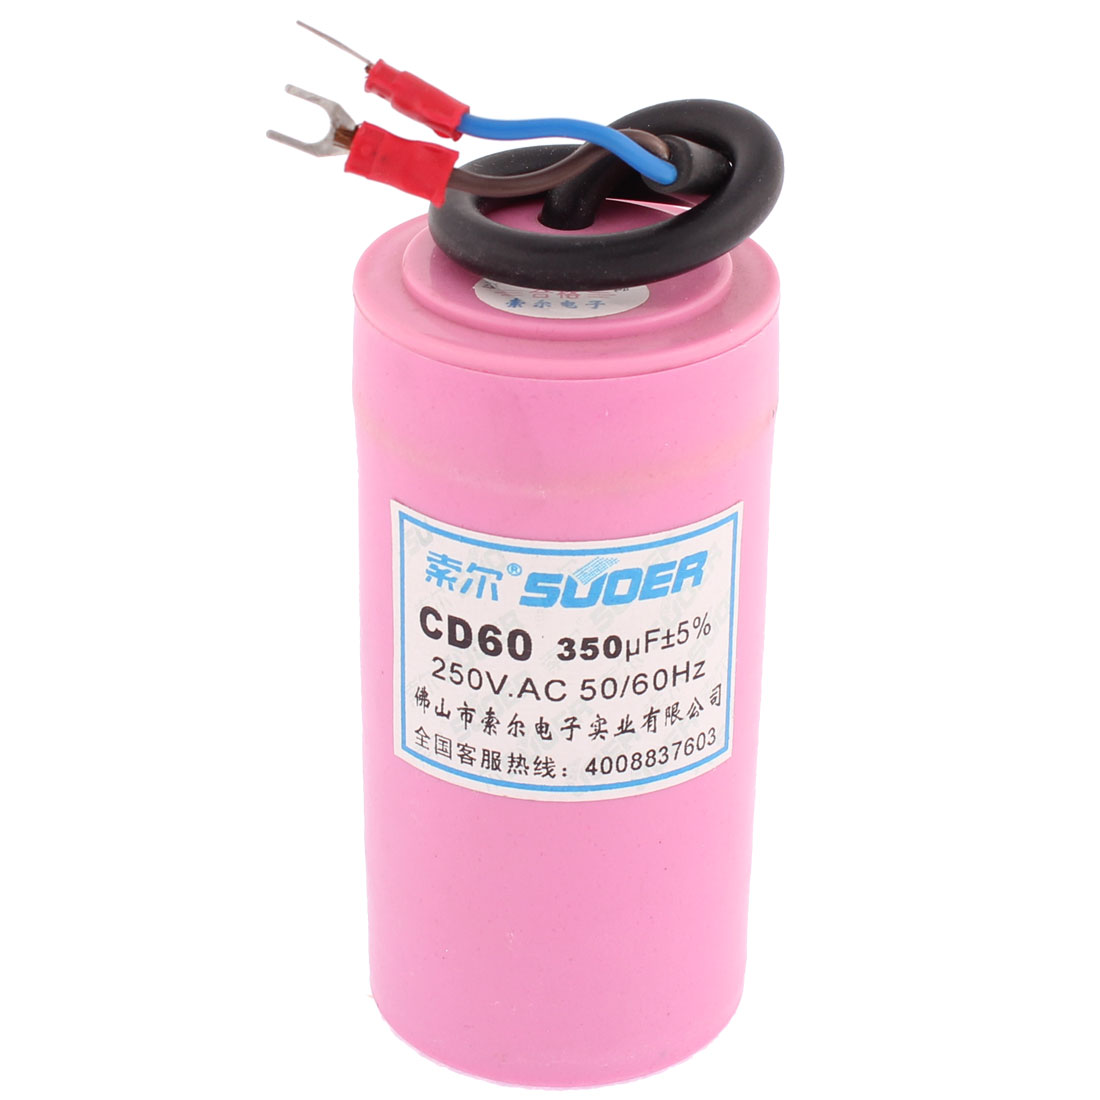 AC 250V 350uF Polypropylene Start Motor Capacitor for Washing Machine Washer